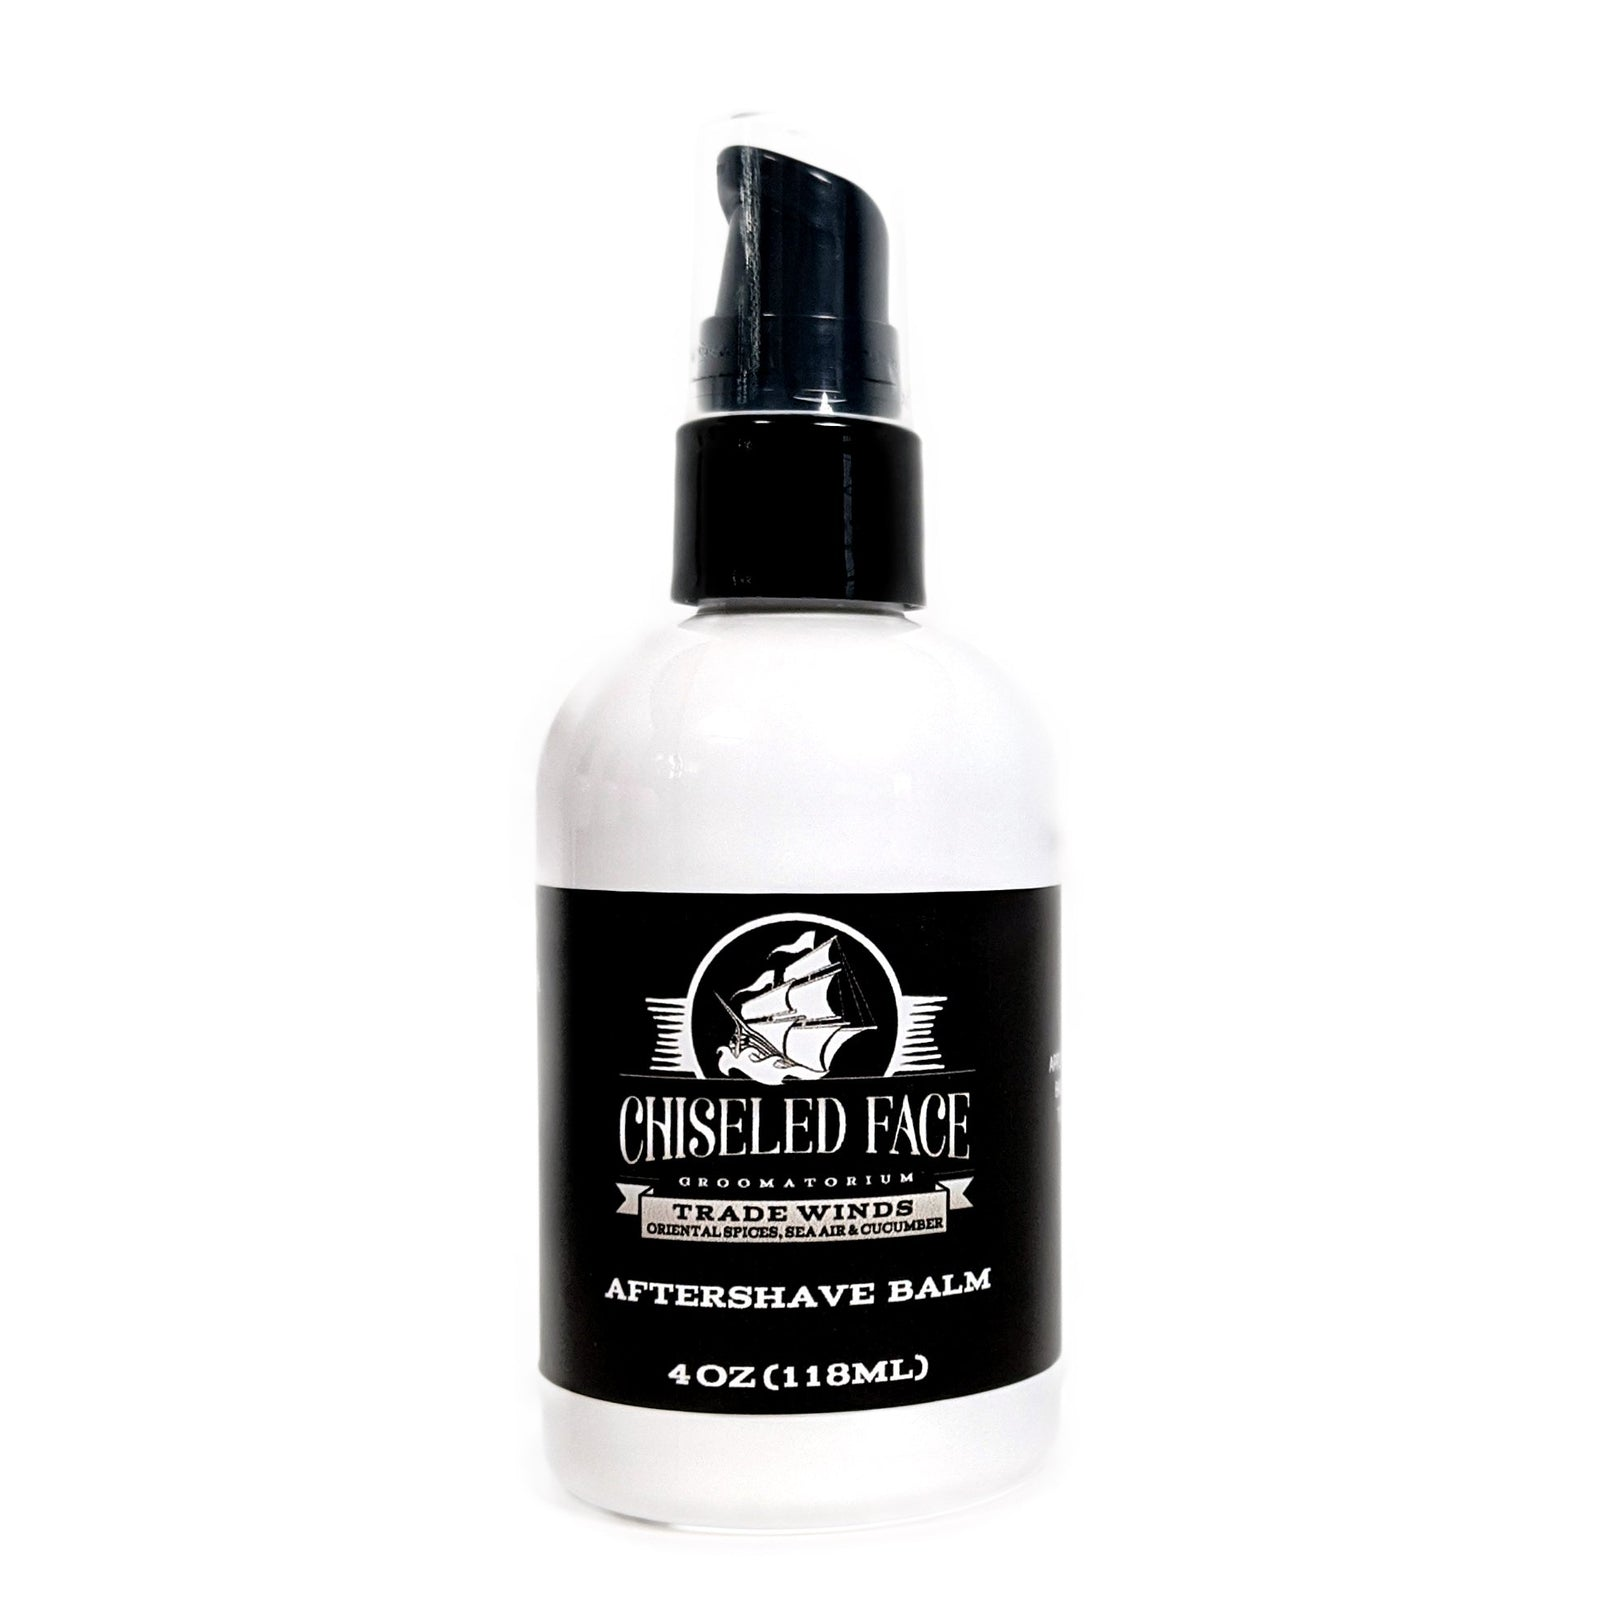 Chiseled Face - Trade Winds - Aftershave Balm